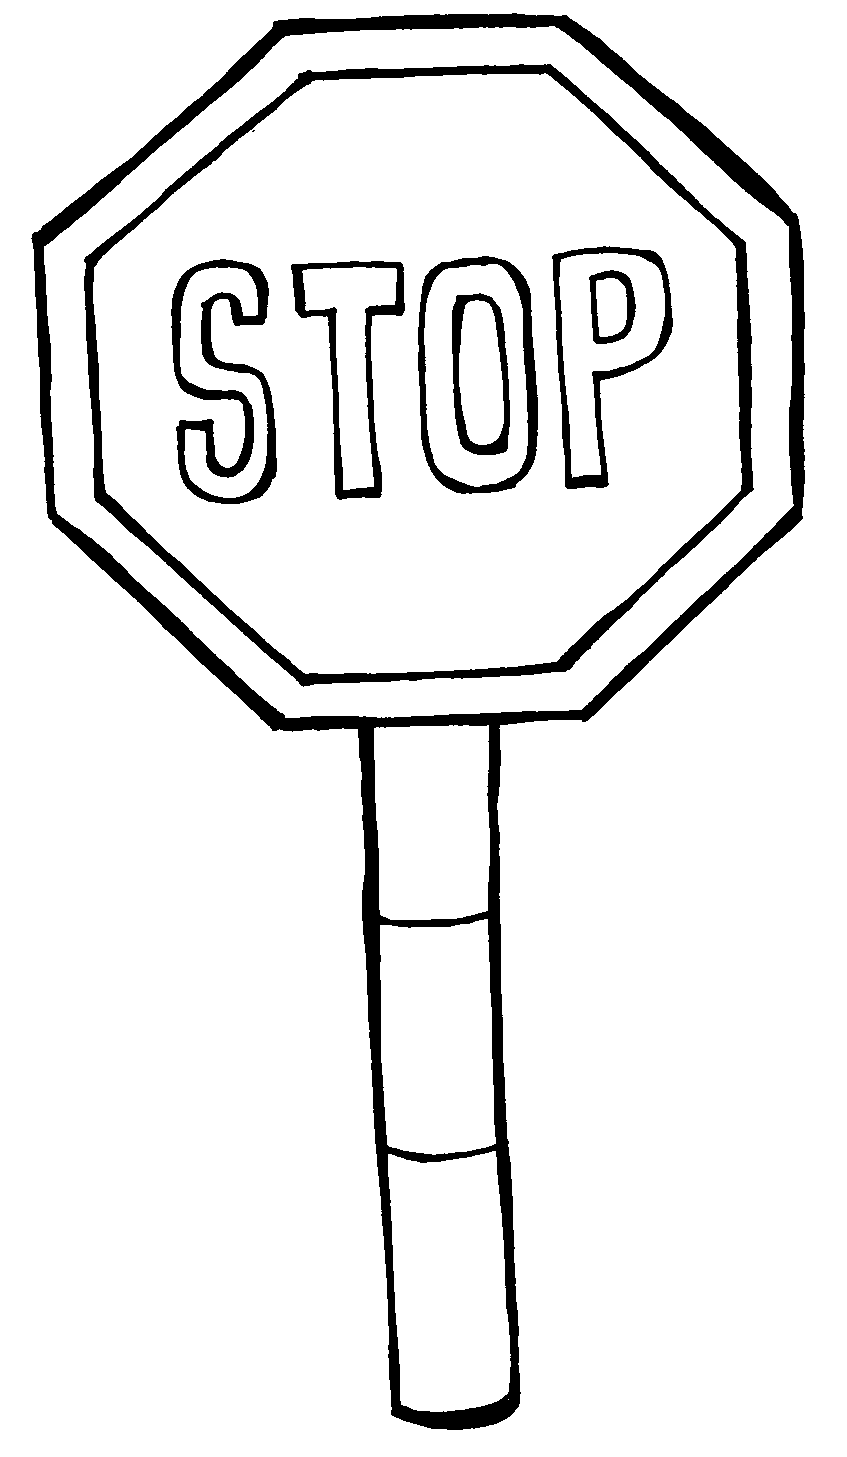 Street sign graphics clipart best for Street sign coloring pages